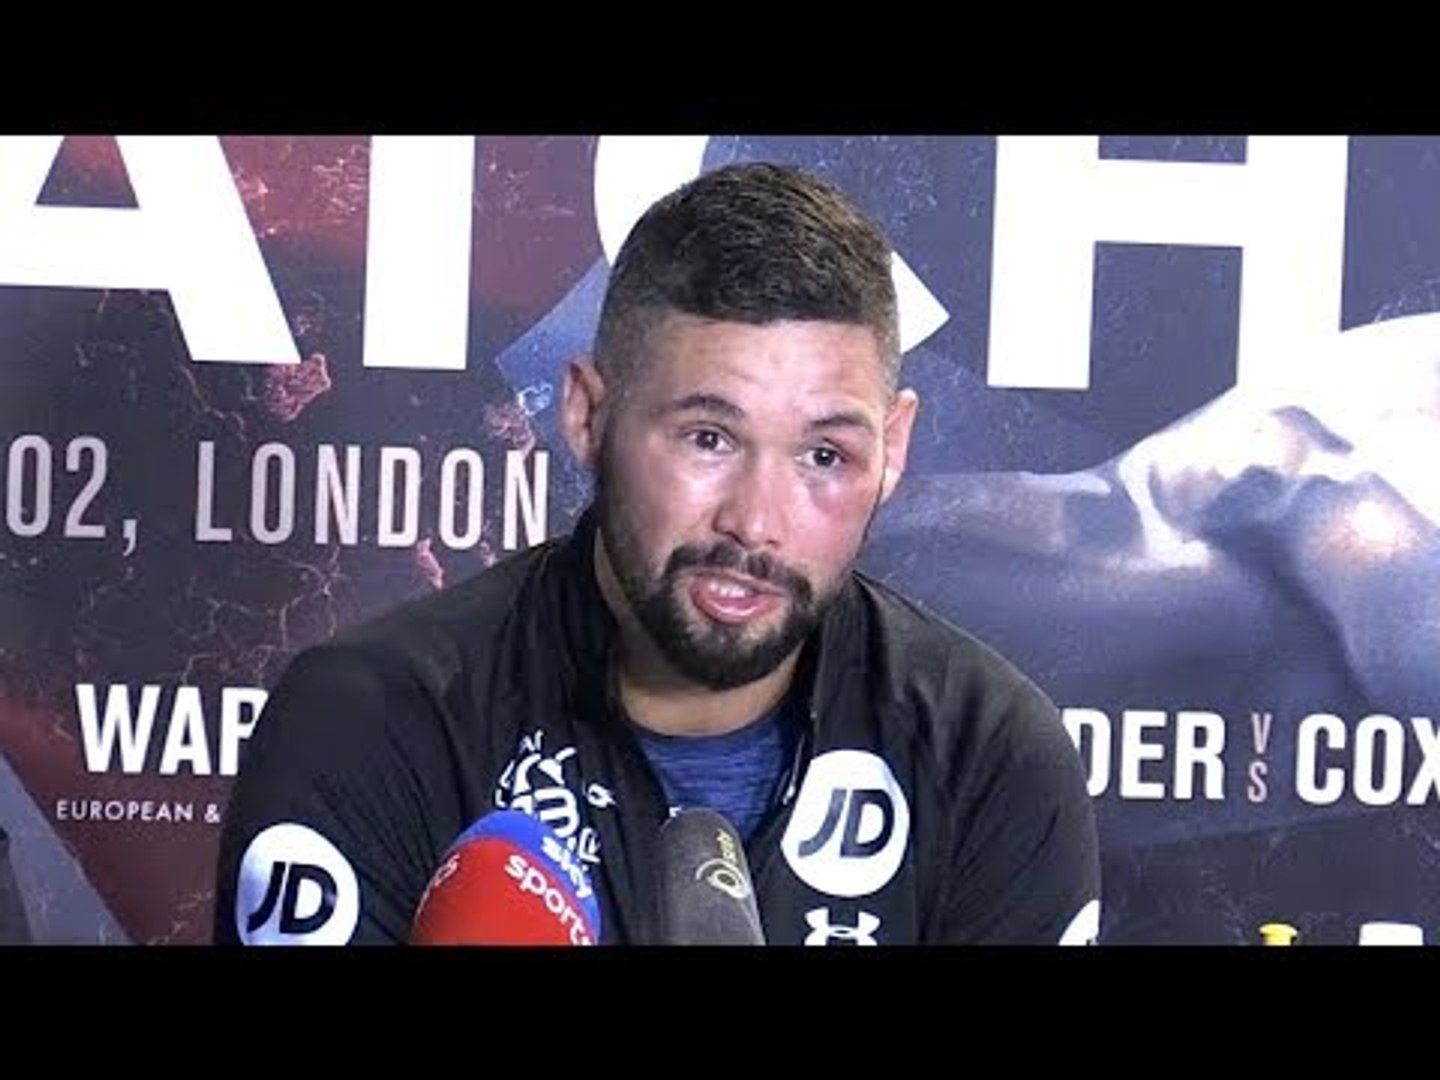 Tony Bellew v David Haye 2 - Tony Bellew's Emotional Full Post Fight Press Conference